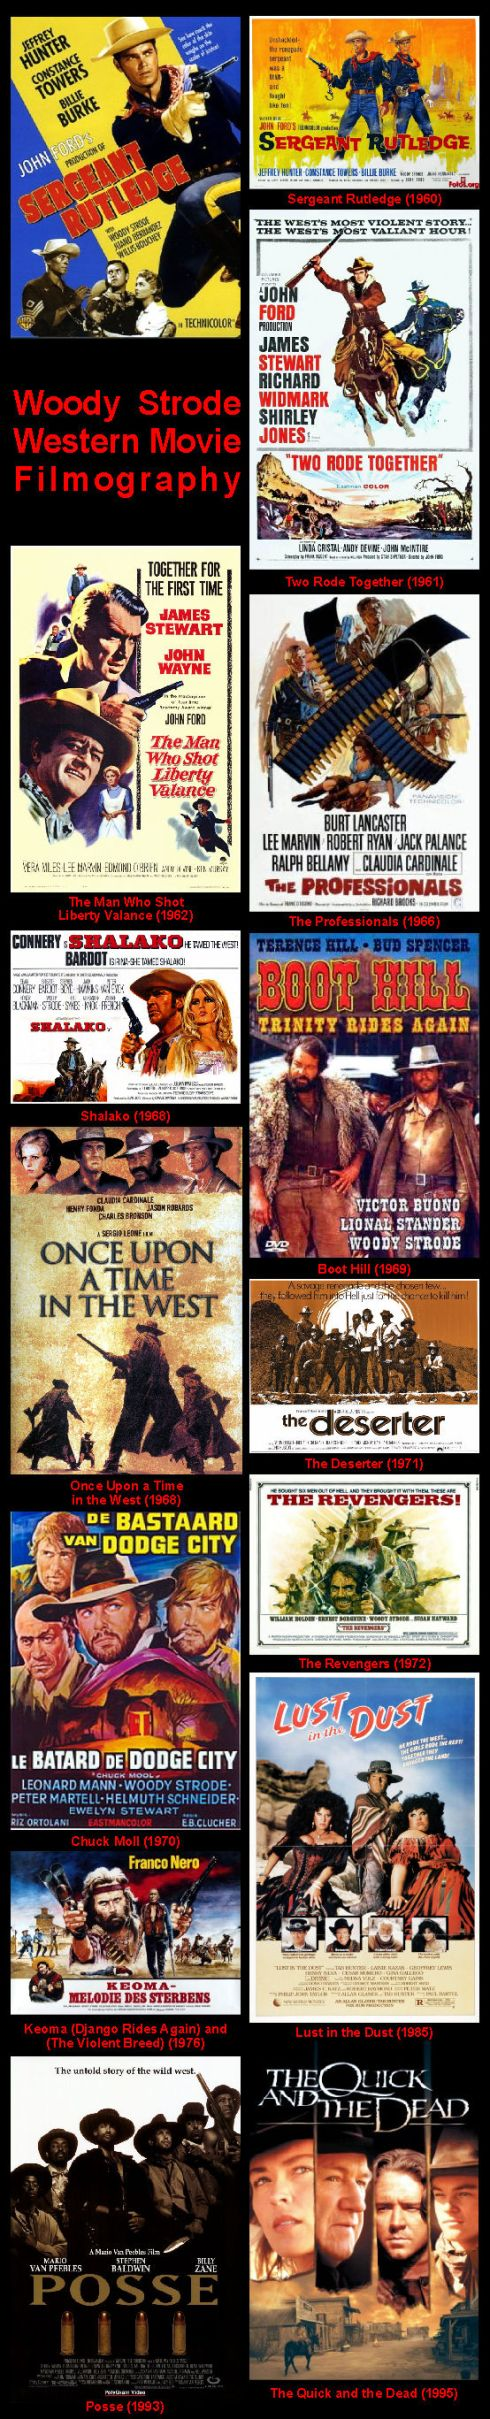 Woody Strode Posters